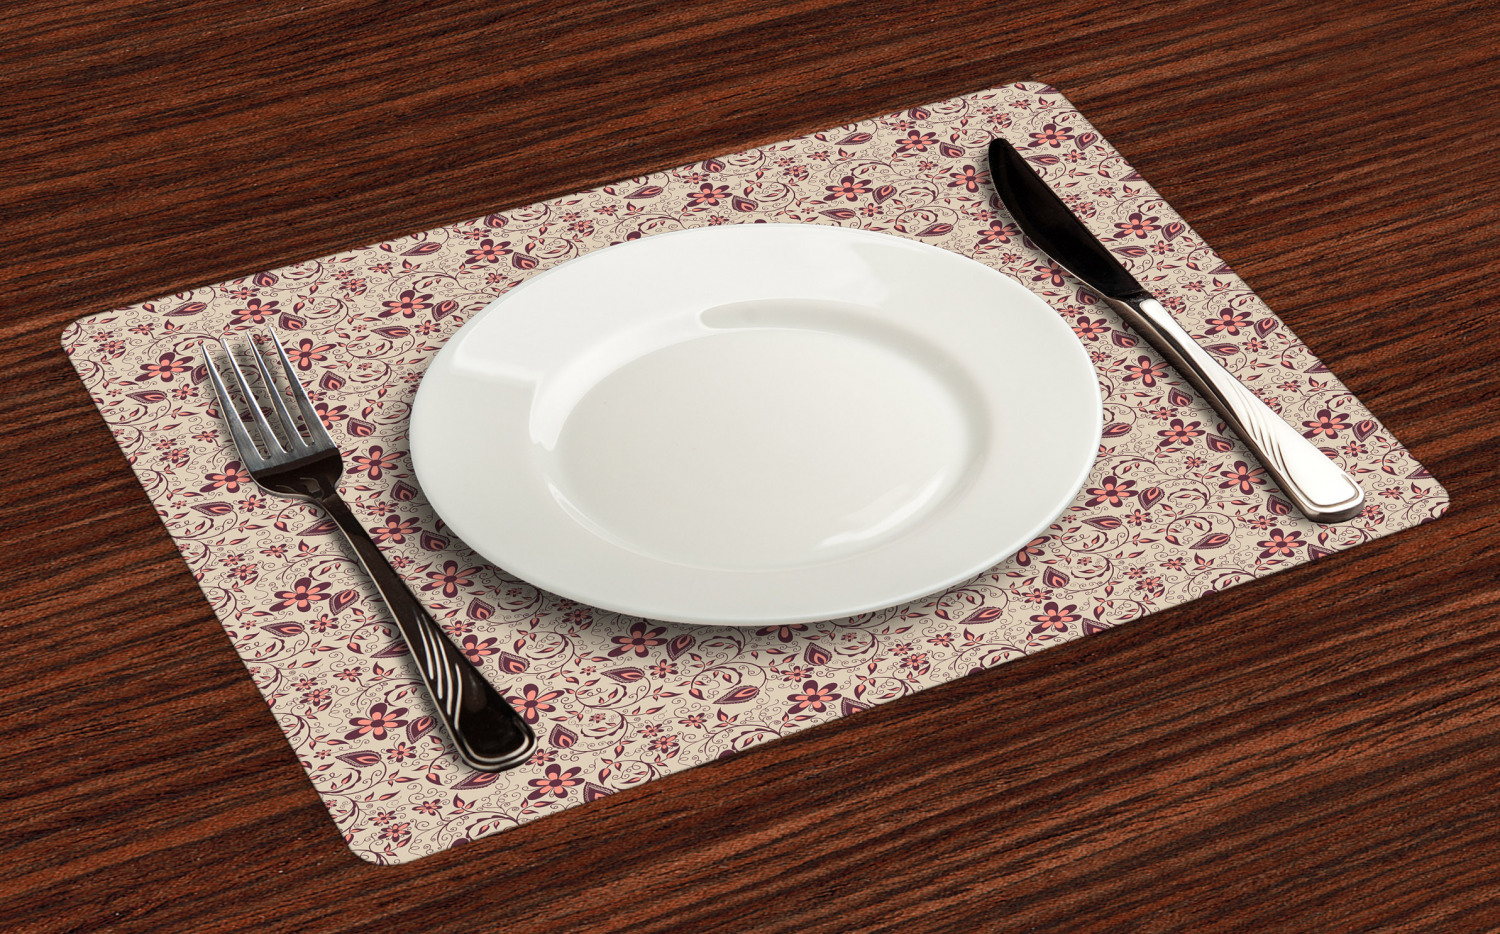 Ambesonne-Flower-Pattern-Placemat-Set-of-4-Fabric-Place-Mats-for-Table-Decor thumbnail 49